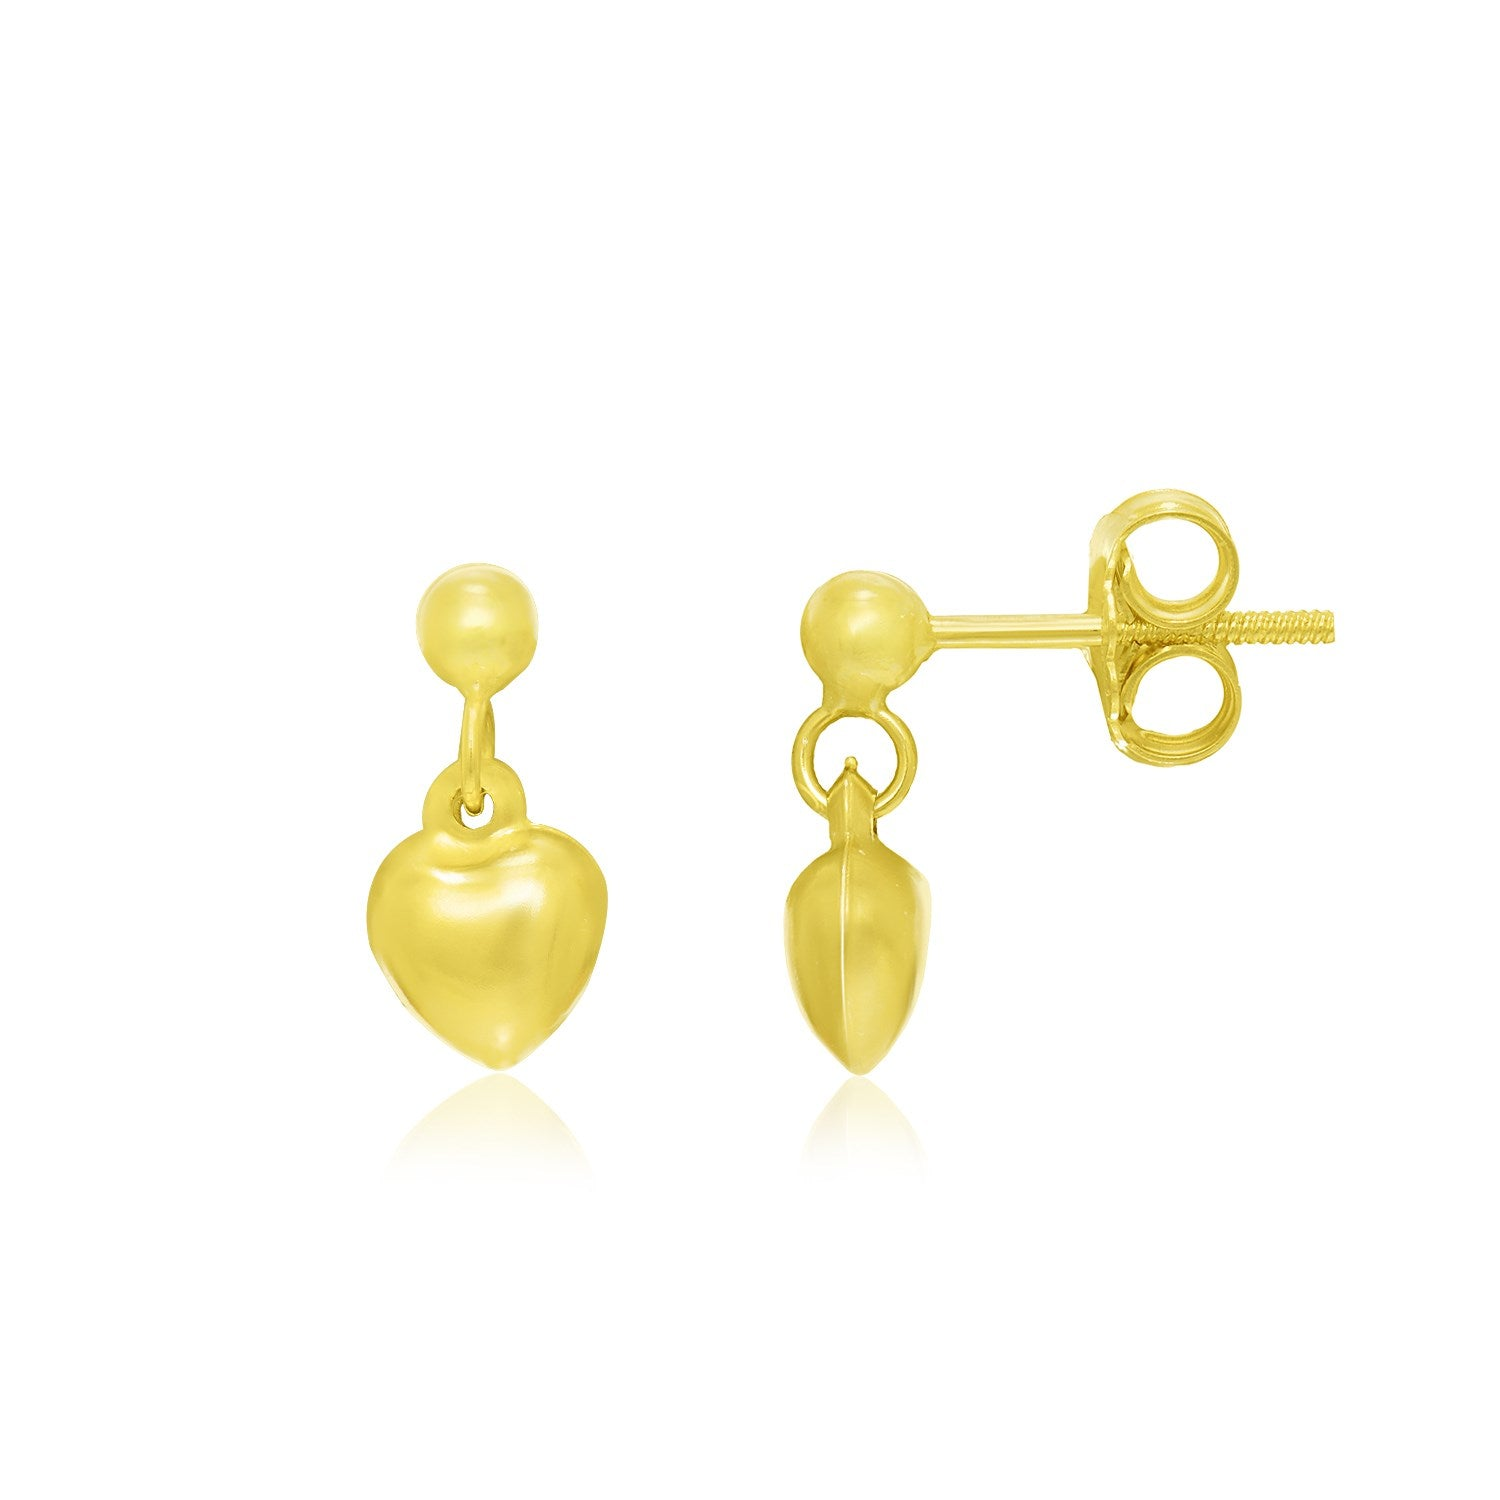 14K Yellow Gold Puffed Heart Children's Dangling Earrings